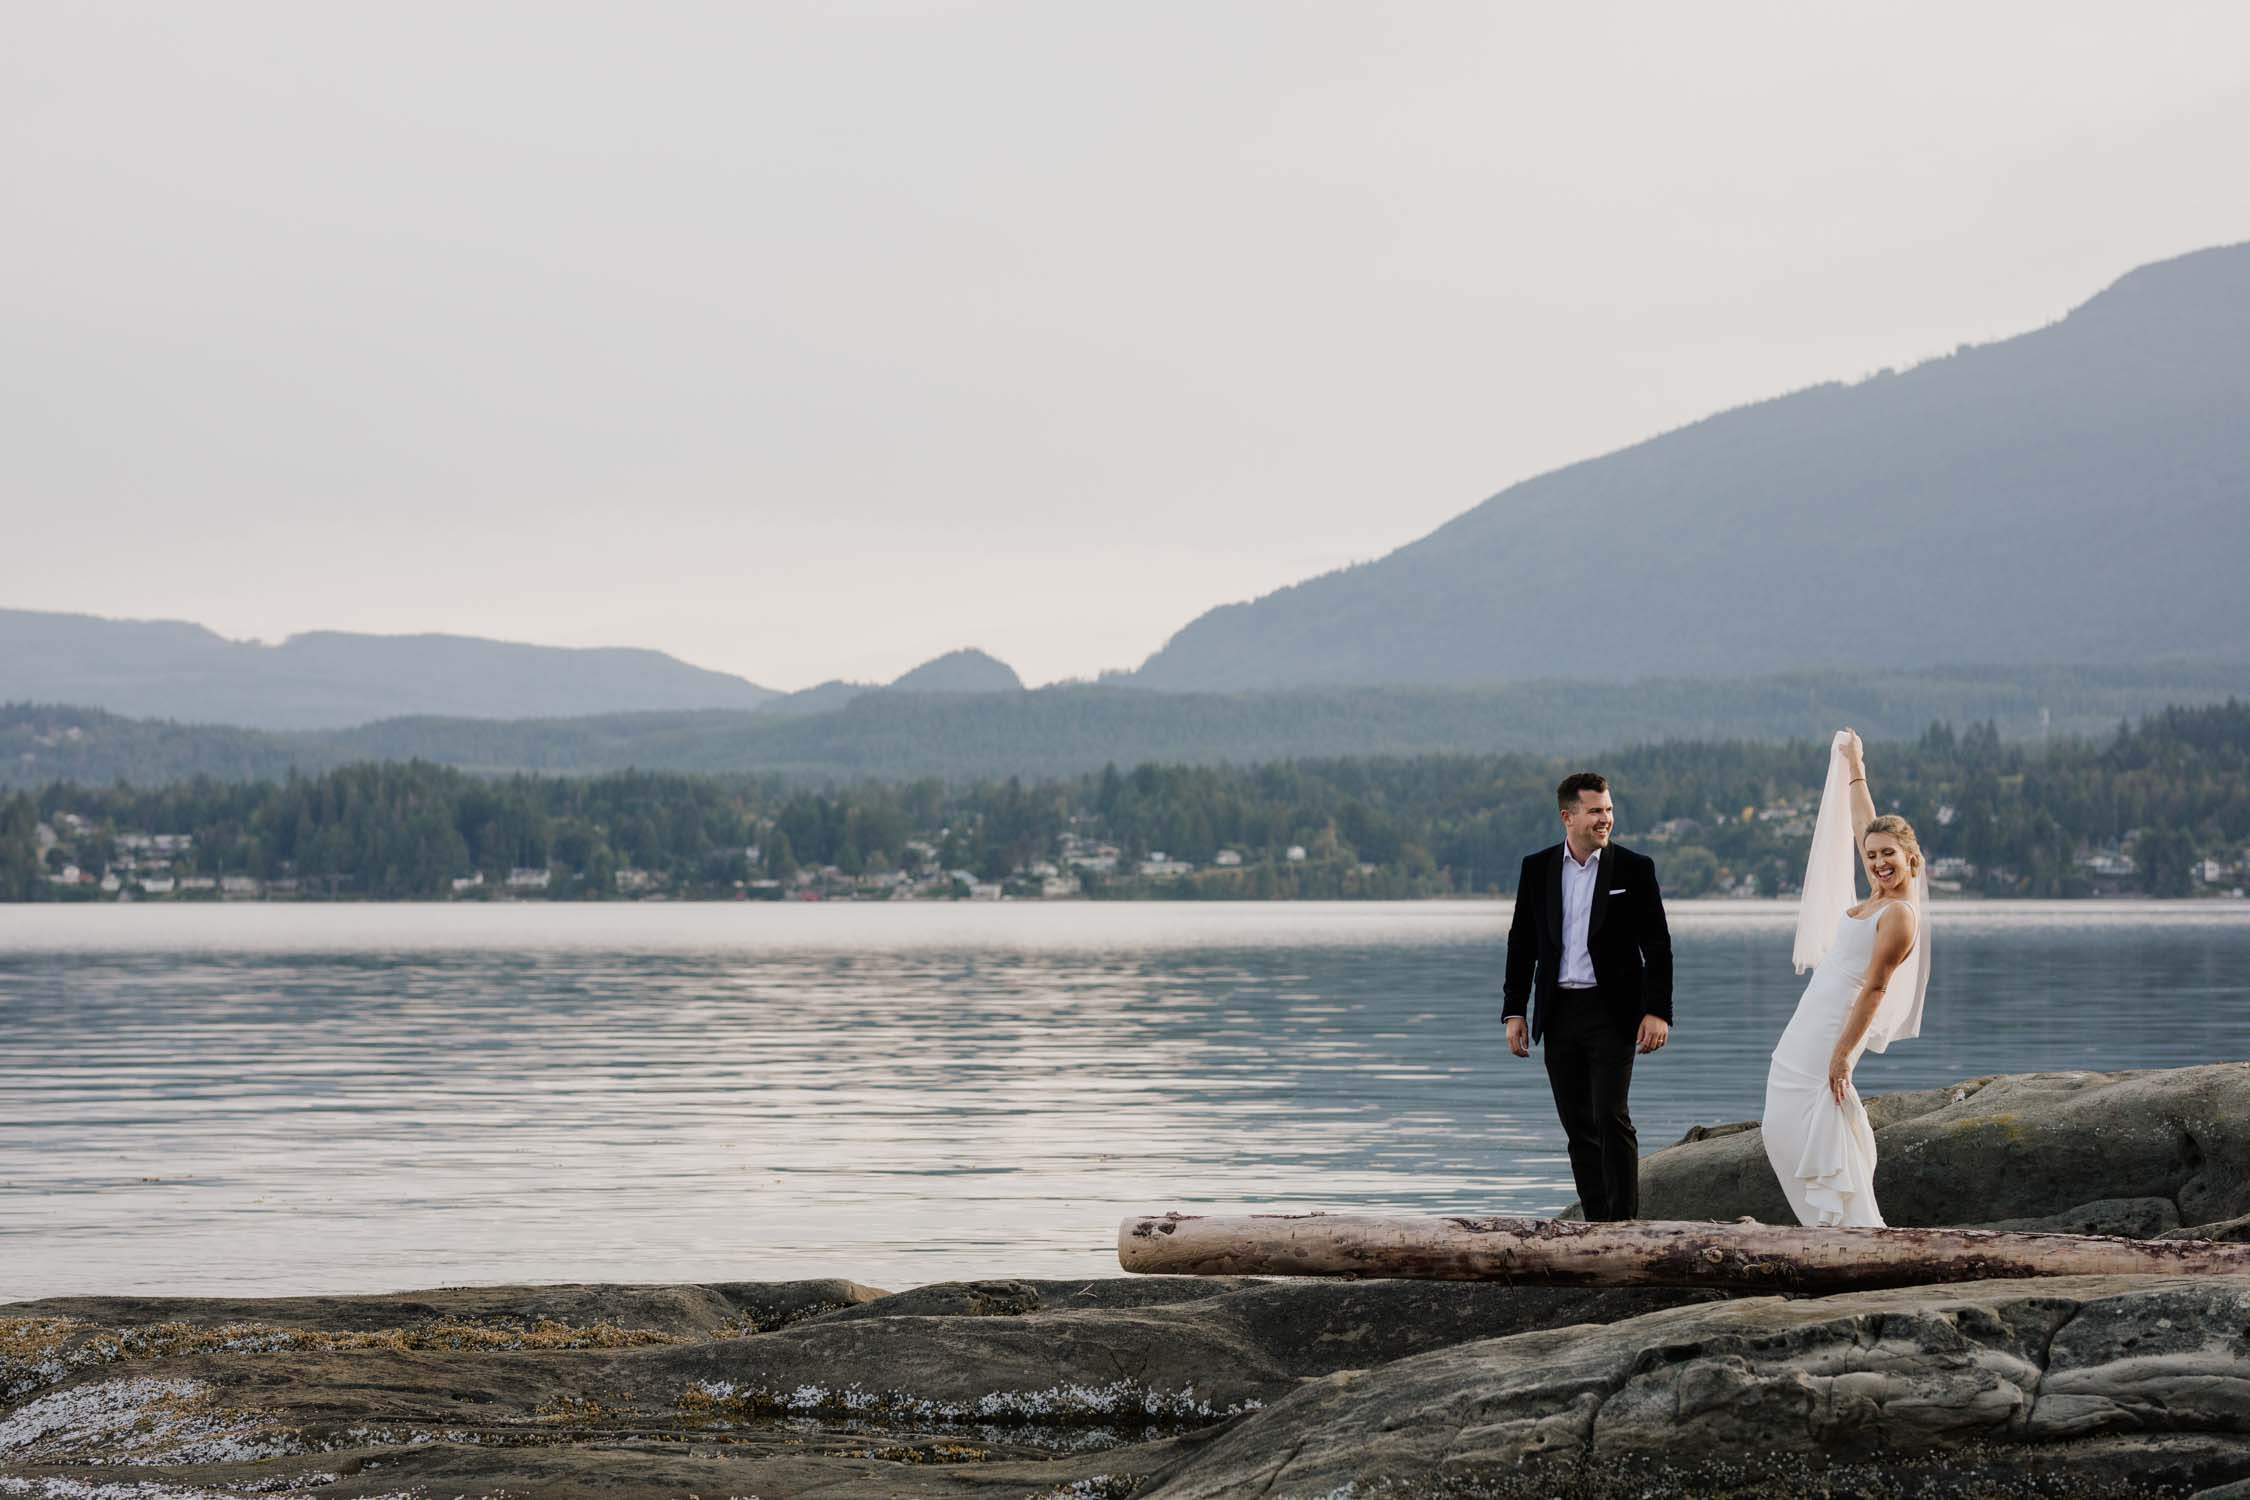 Fun wedding photo taken at the beach with sea and mountain views on Vancouver Island